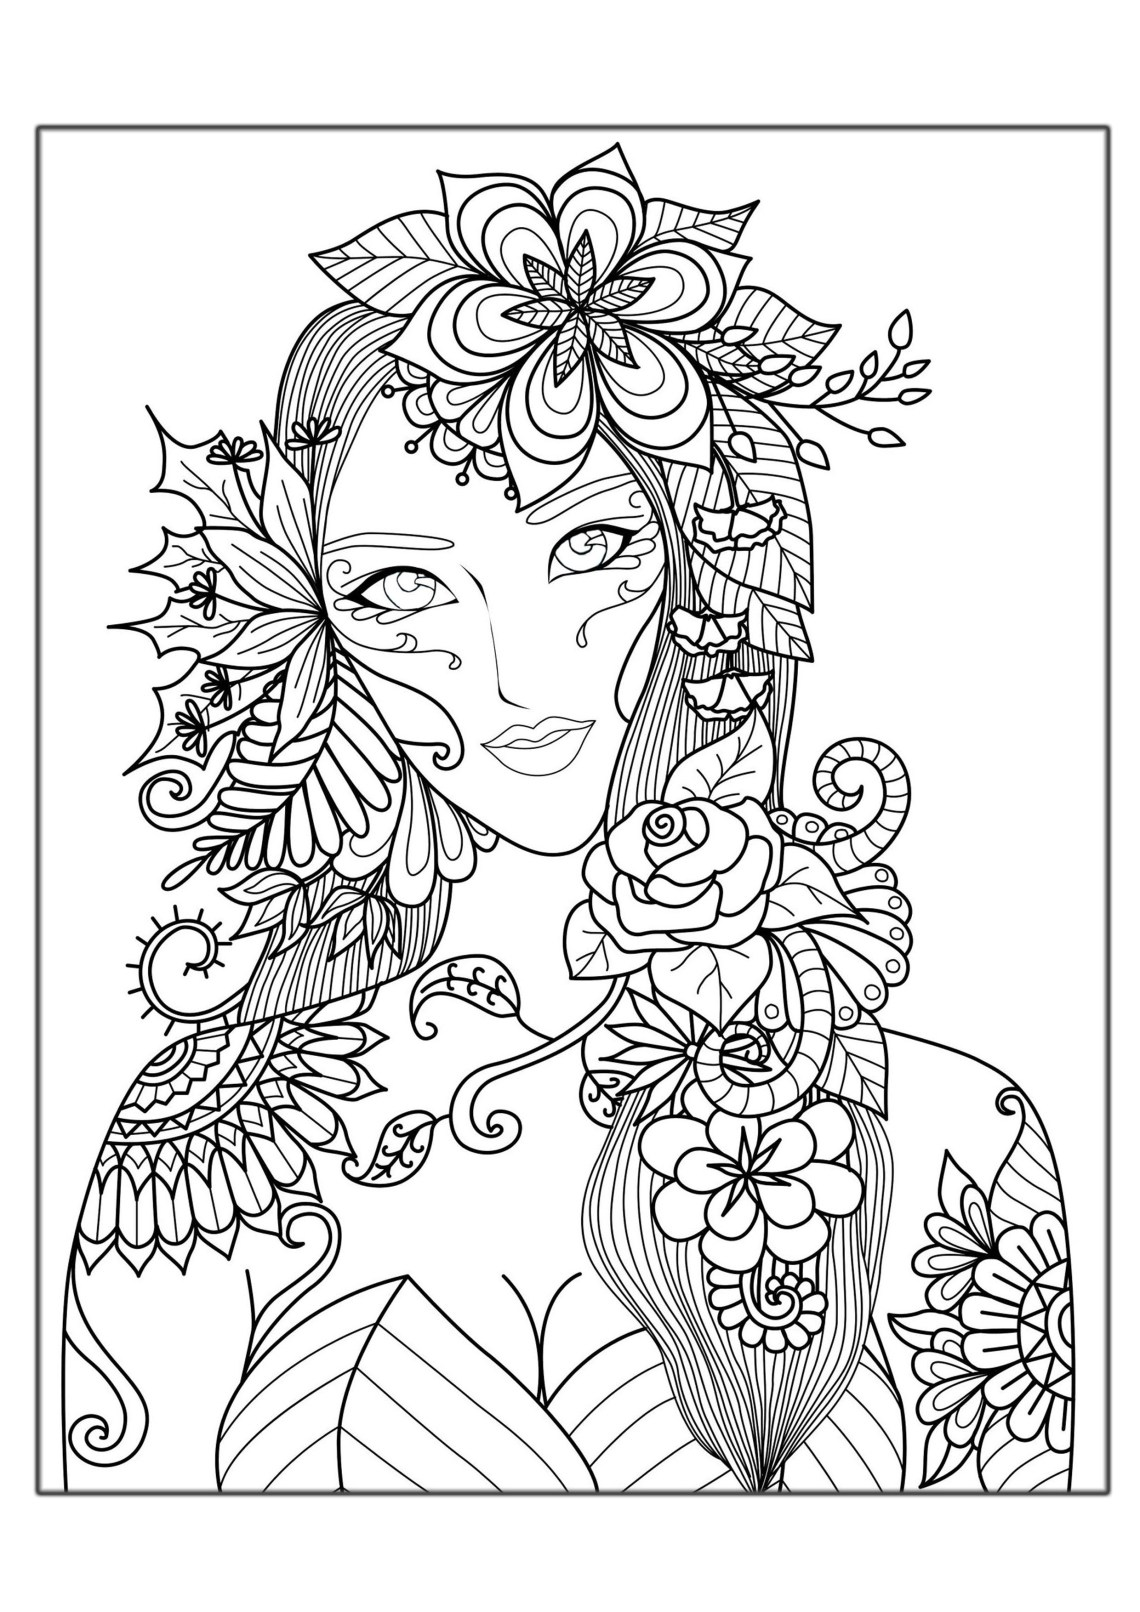 Woman flowers - Anti stress Adult Coloring Pages | coloring pictures for adults flowers